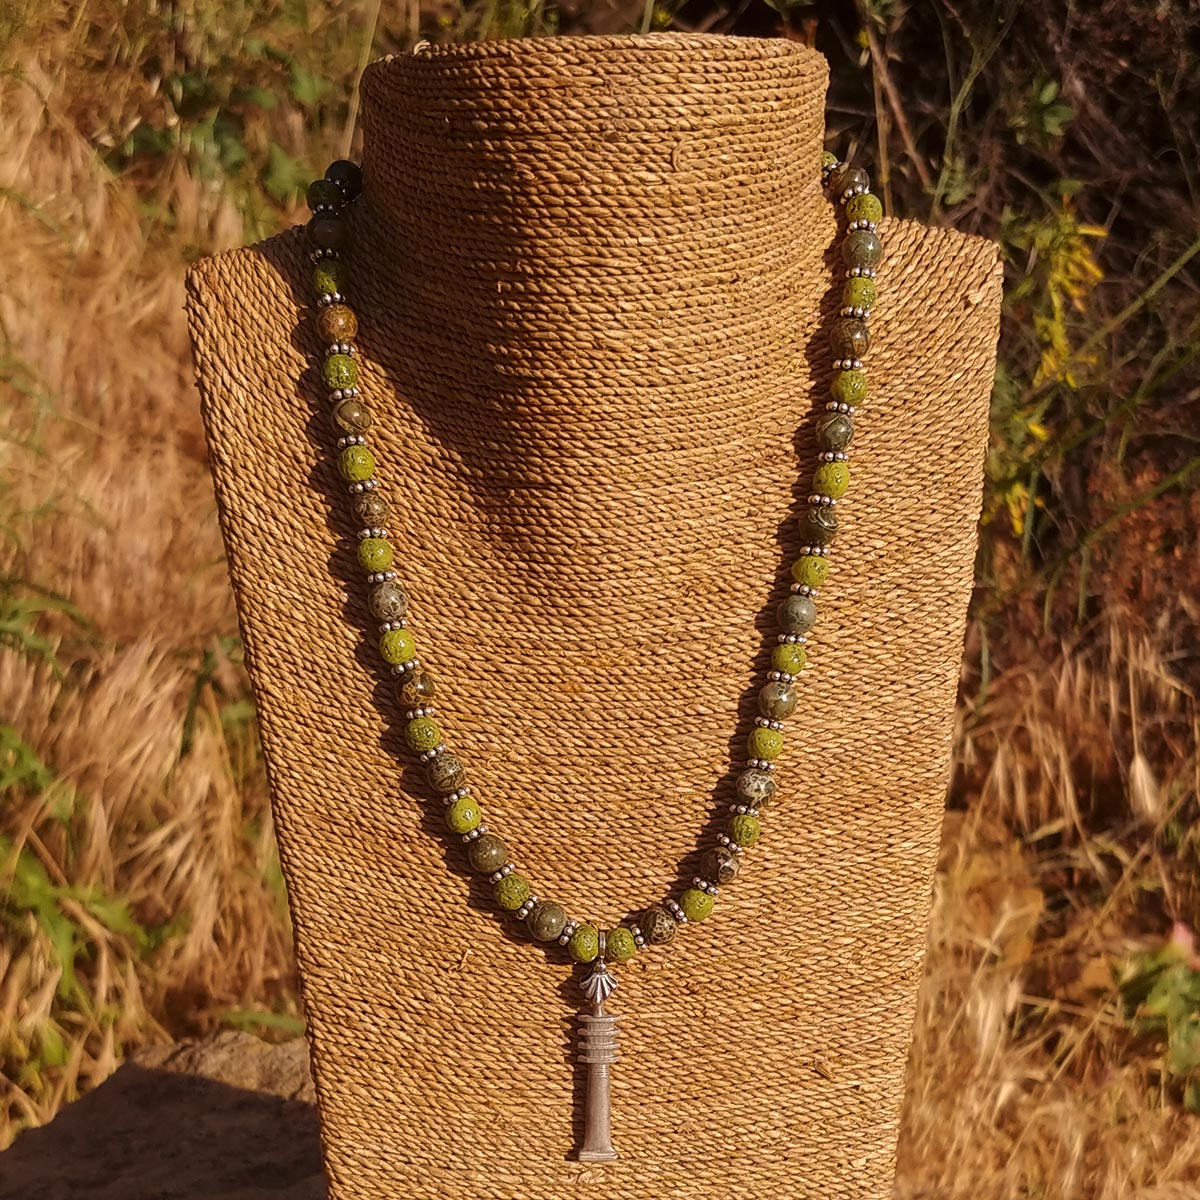 Women's Necklace in Nile Green Faience with Green Brecciated Jasper - Em Hotep Collection